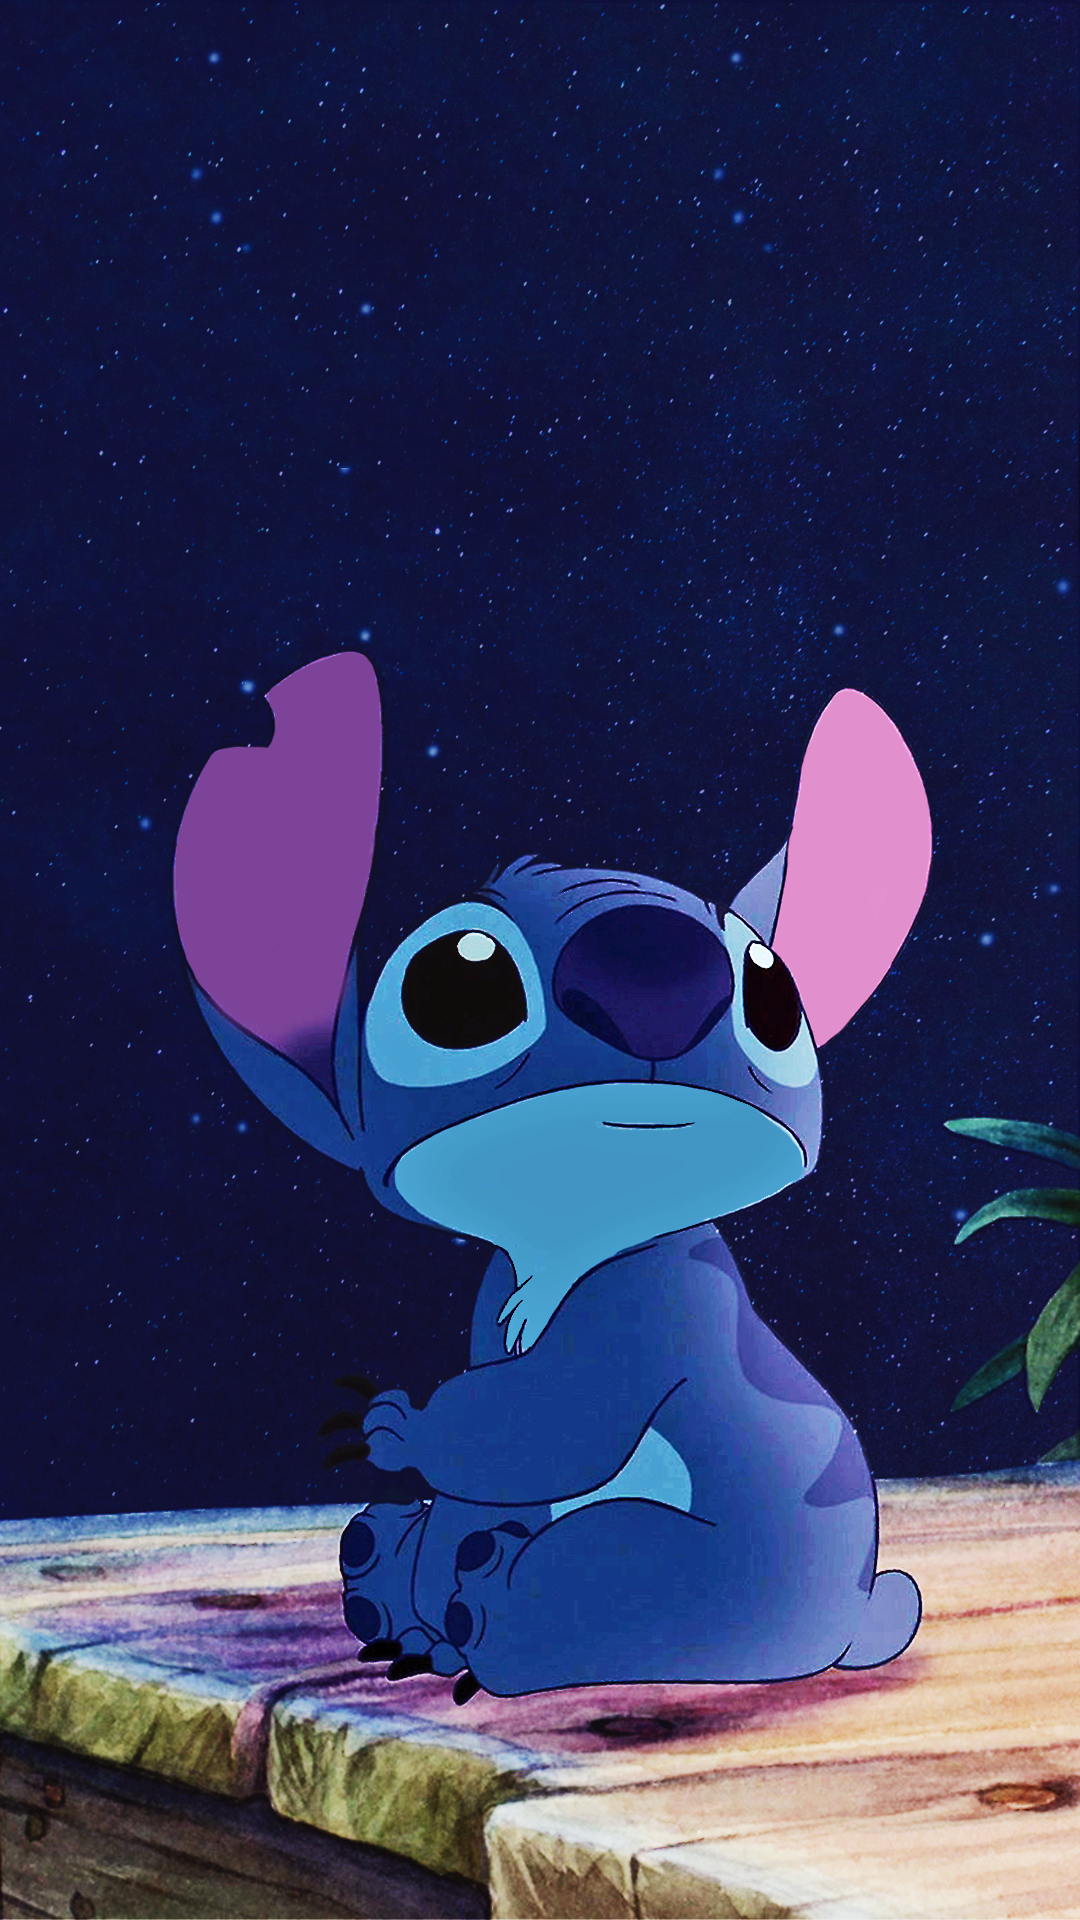 1080x1920 Lilo & Stitch background - you can find the rest on my website ...